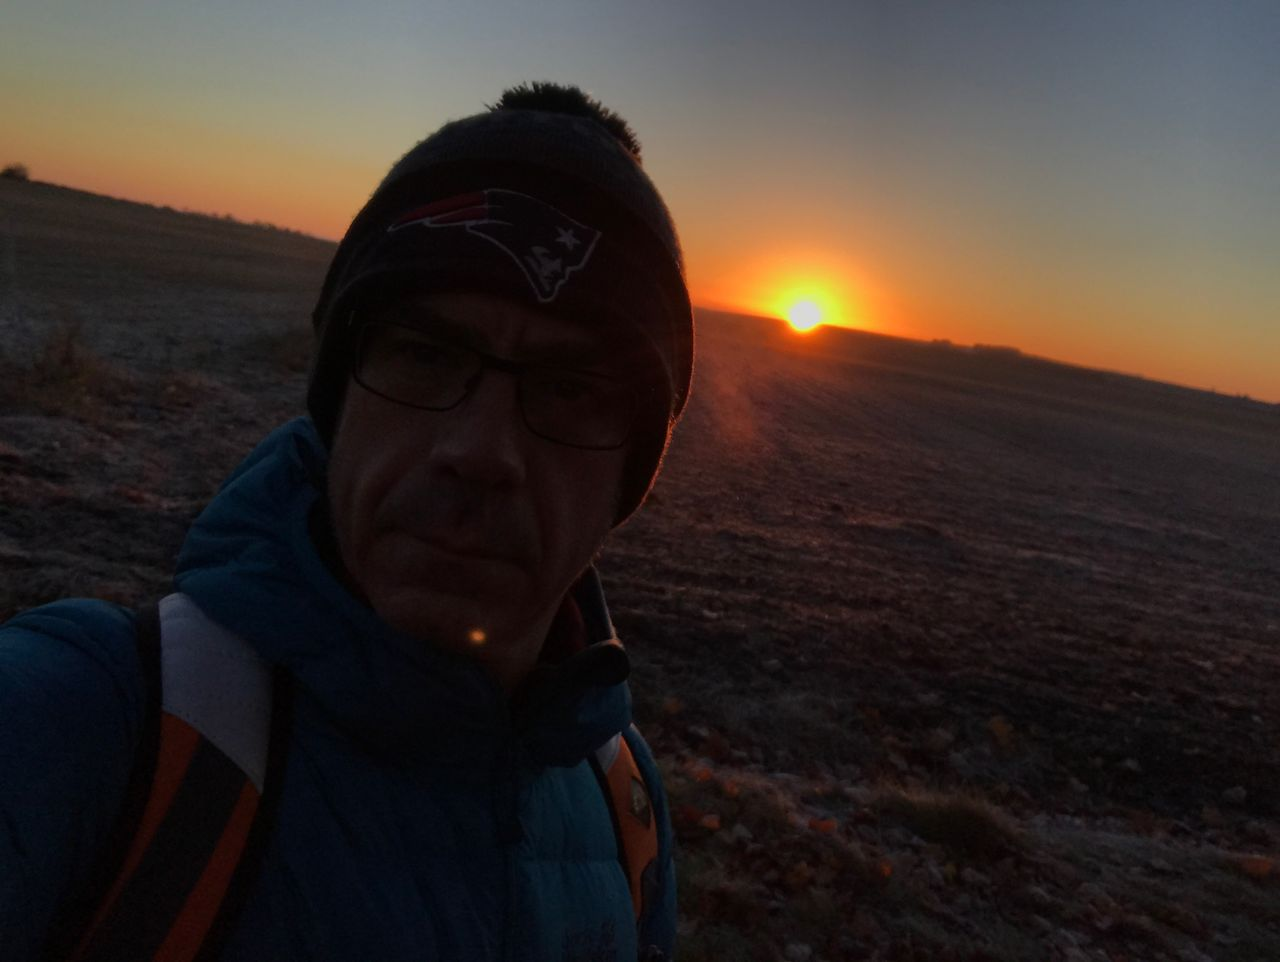 sunset, real people, one person, leisure activity, nature, outdoors, landscape, lifestyles, headshot, scenics, beauty in nature, sun, sky, adventure, hiking, mountain, standing, vacations, winter, warm clothing, day, close-up, young adult, people